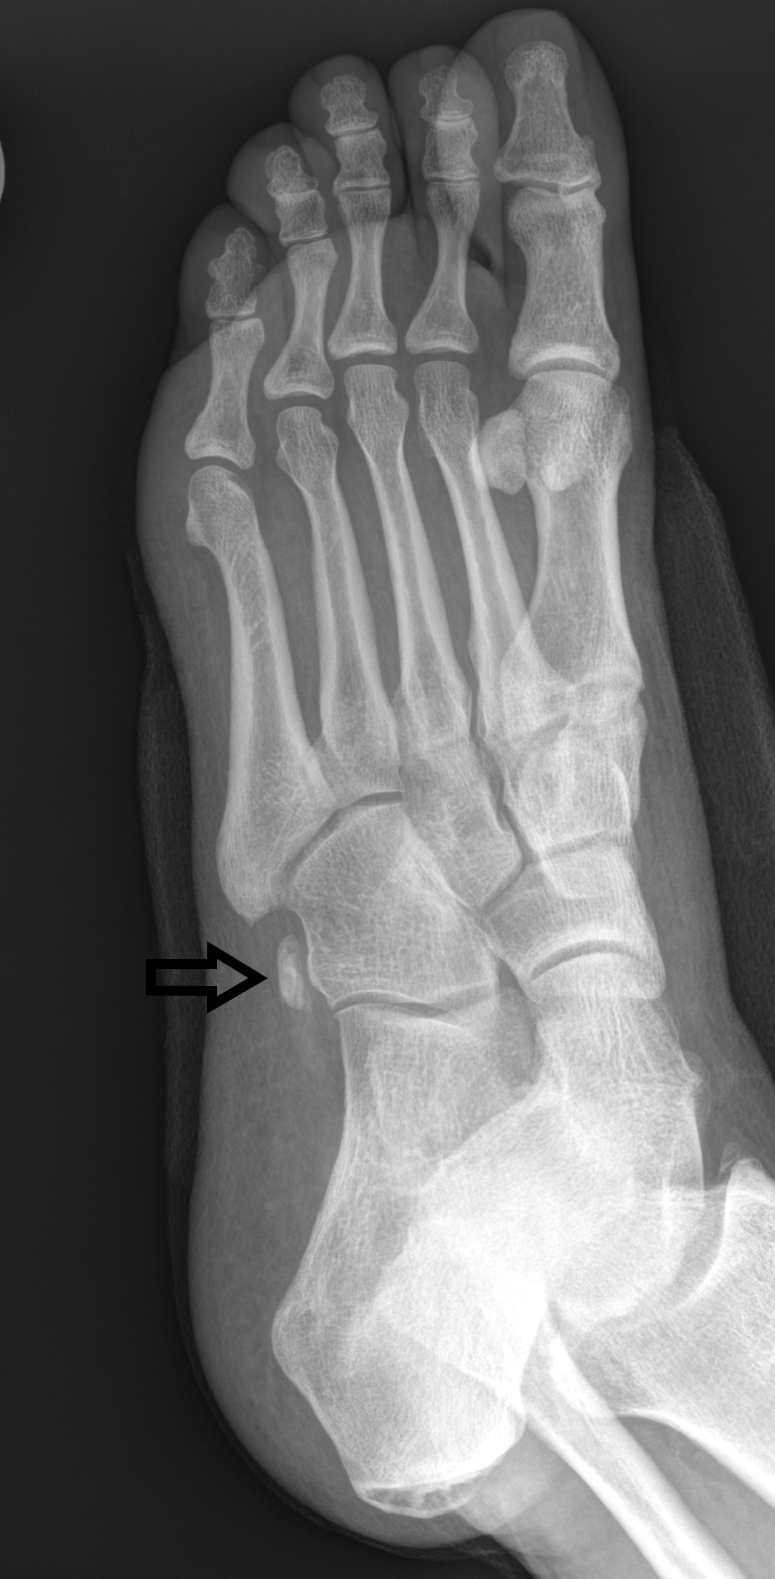 Prominent os peroneus on an oblique radiograph of the left foot. This finding may correlate to osseous enlargement as a chronic stress-related change versus a congenital prominent appearance.